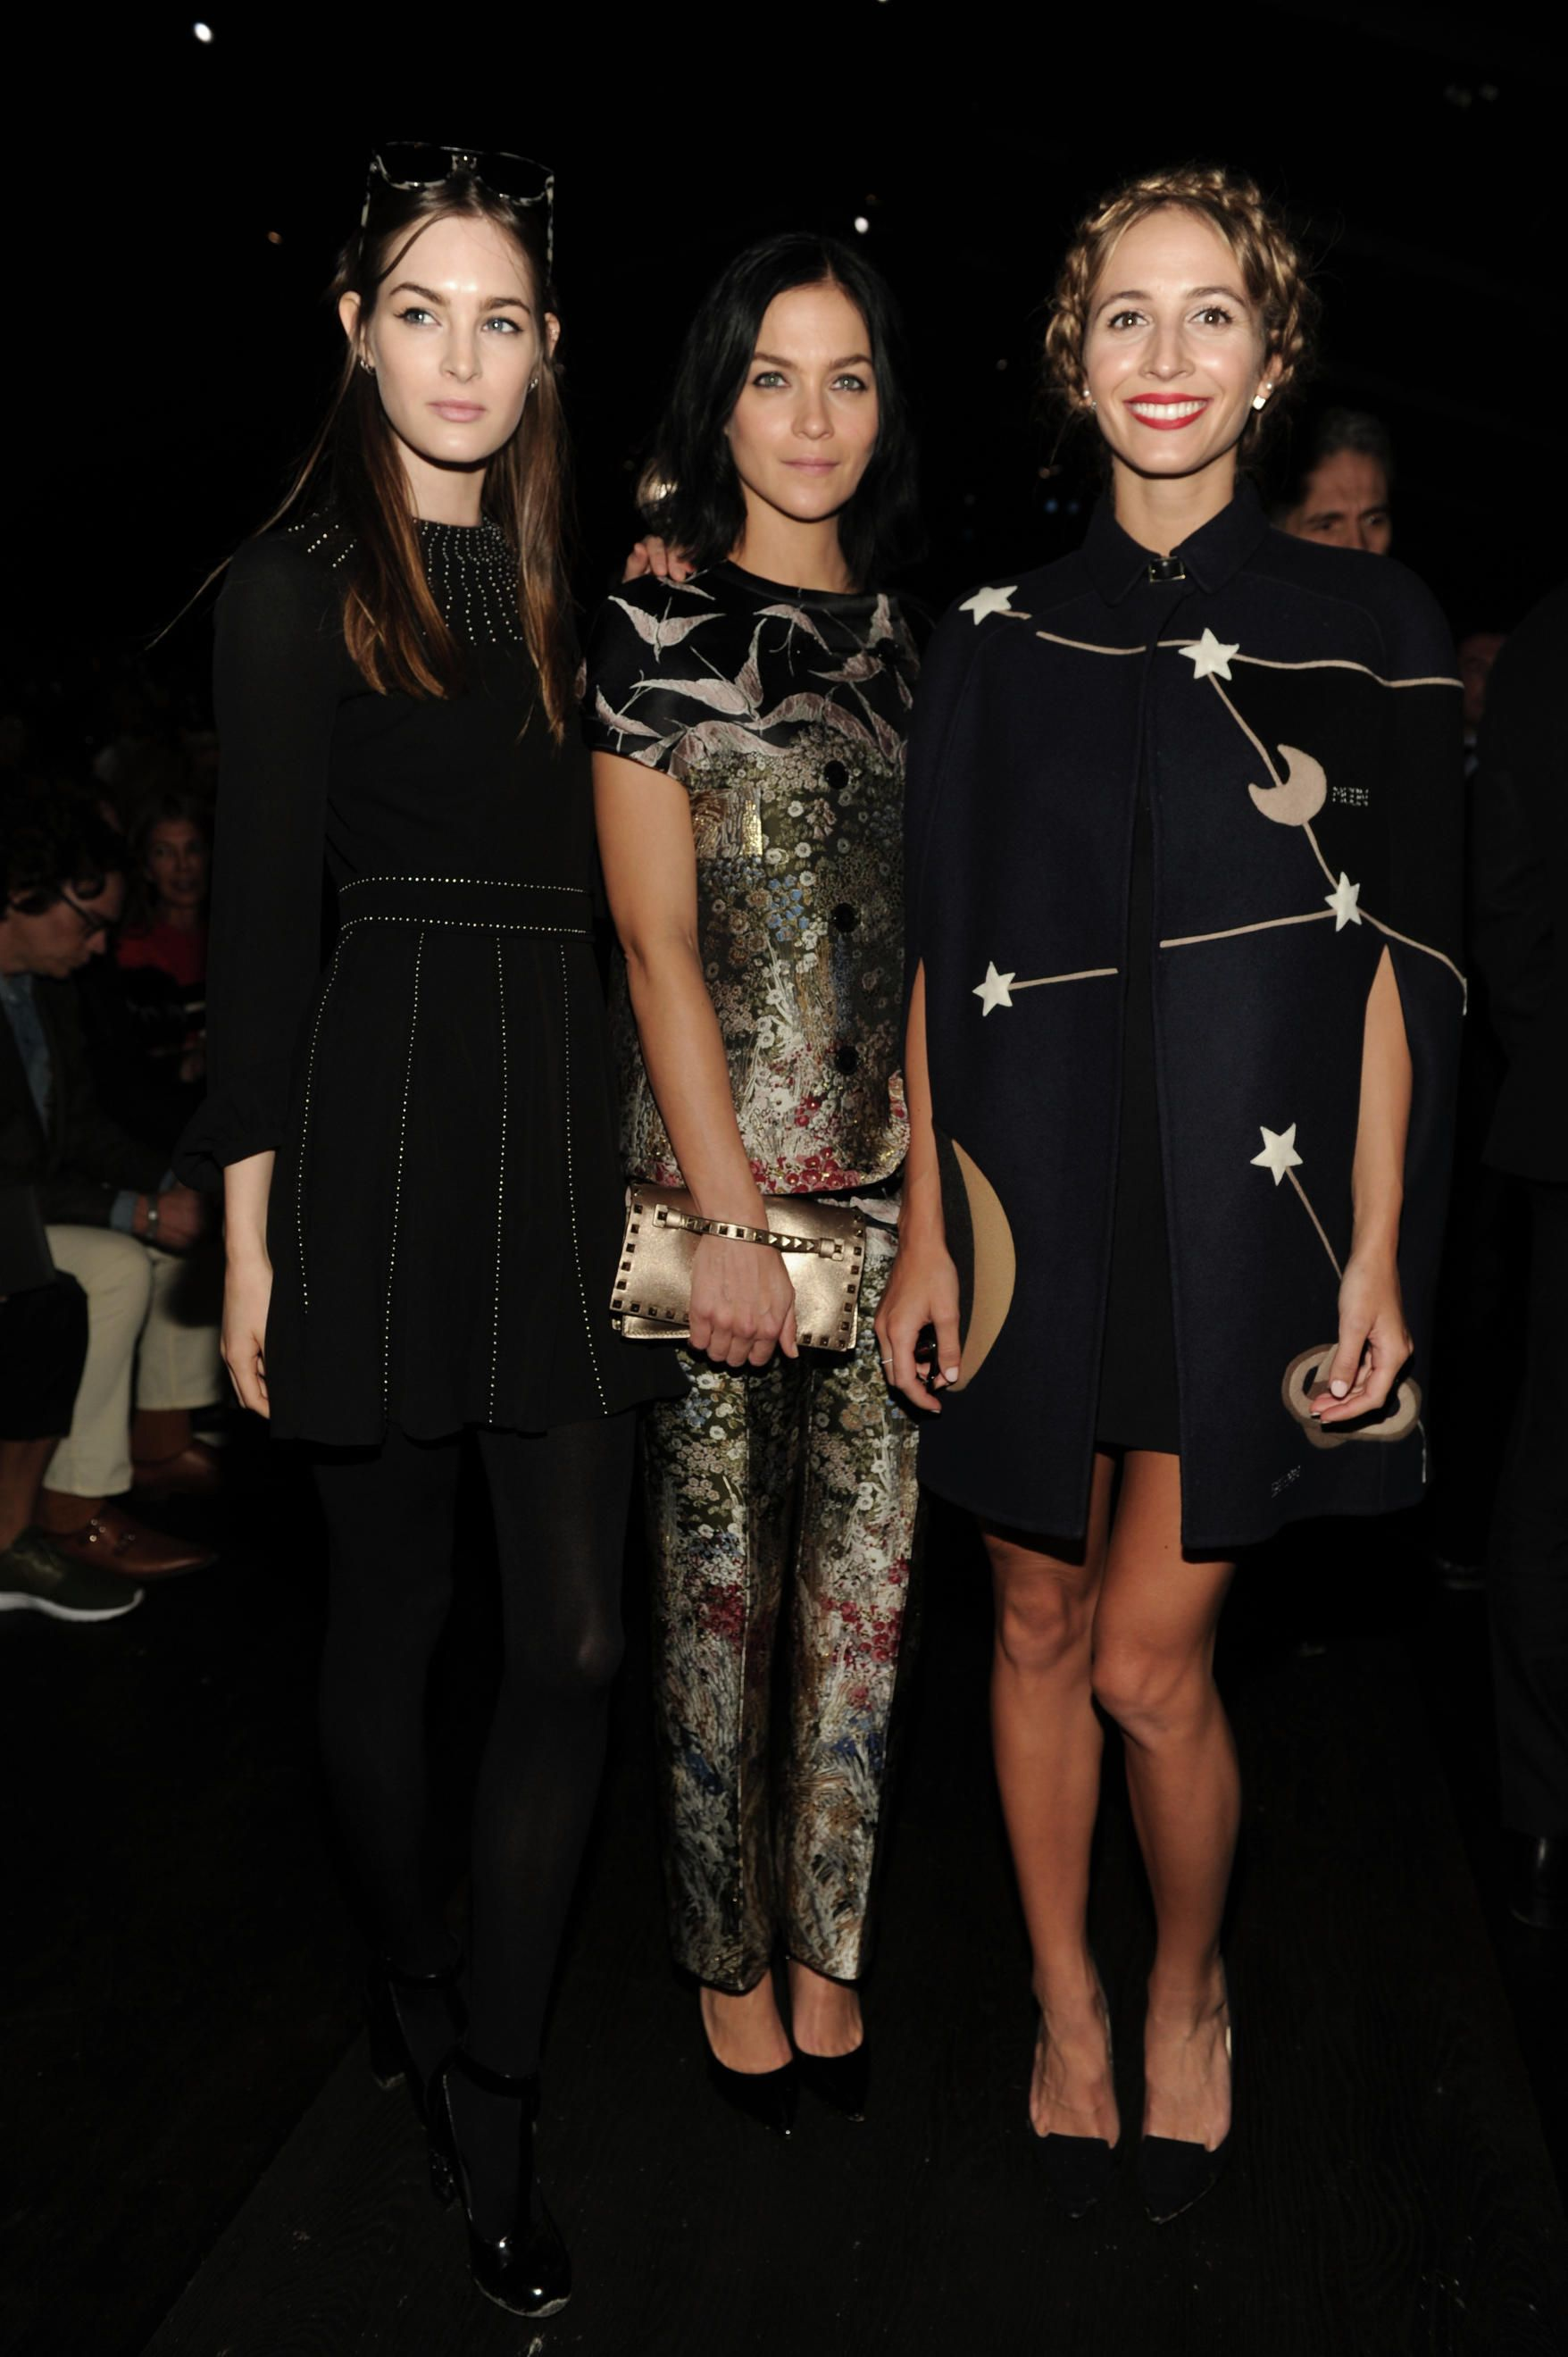 Laura Love, Leigh Lezark and Harley Viera-Newton in Valentino to the Woemn's Spring/Summer 2016 fashion show on October 6th, 2015.